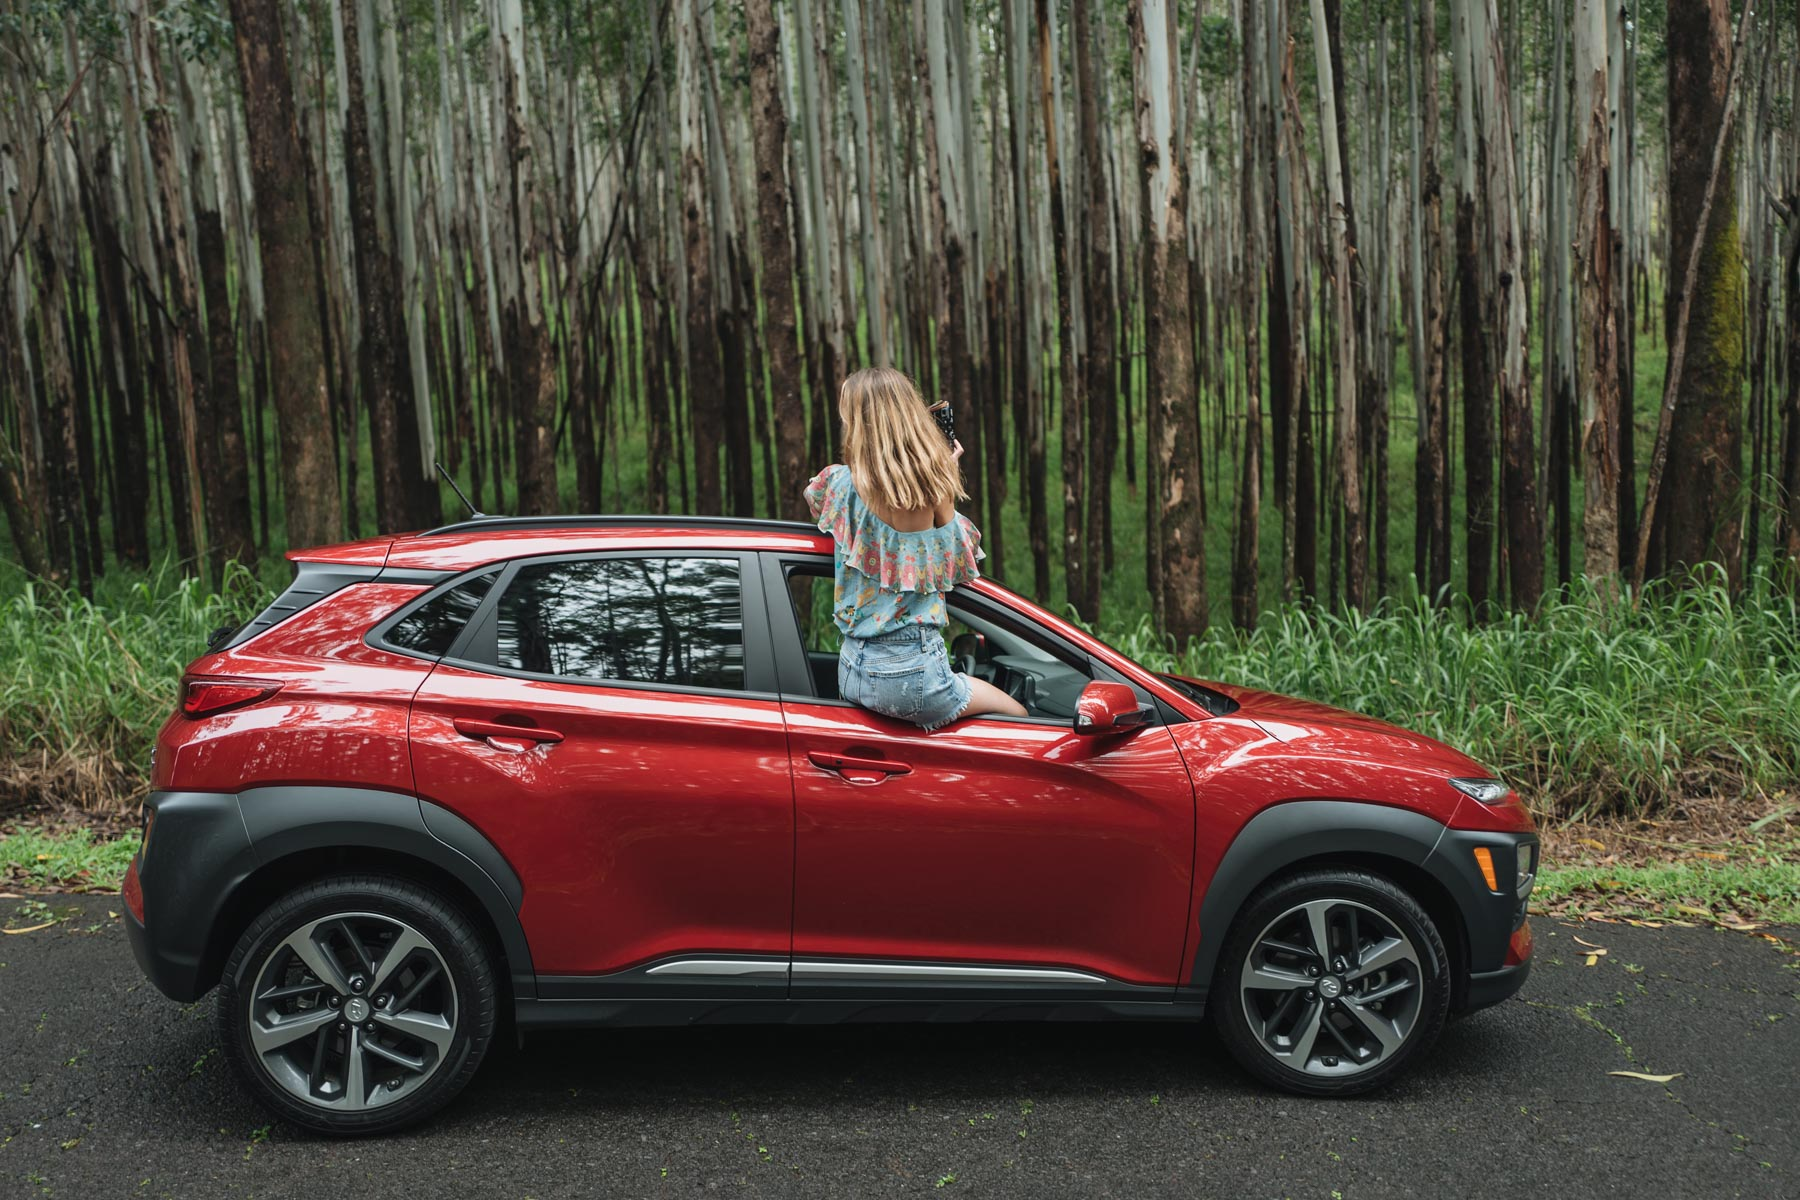 Jess Ann Kirby recommends the Hyundai Kona for adventurous escapes